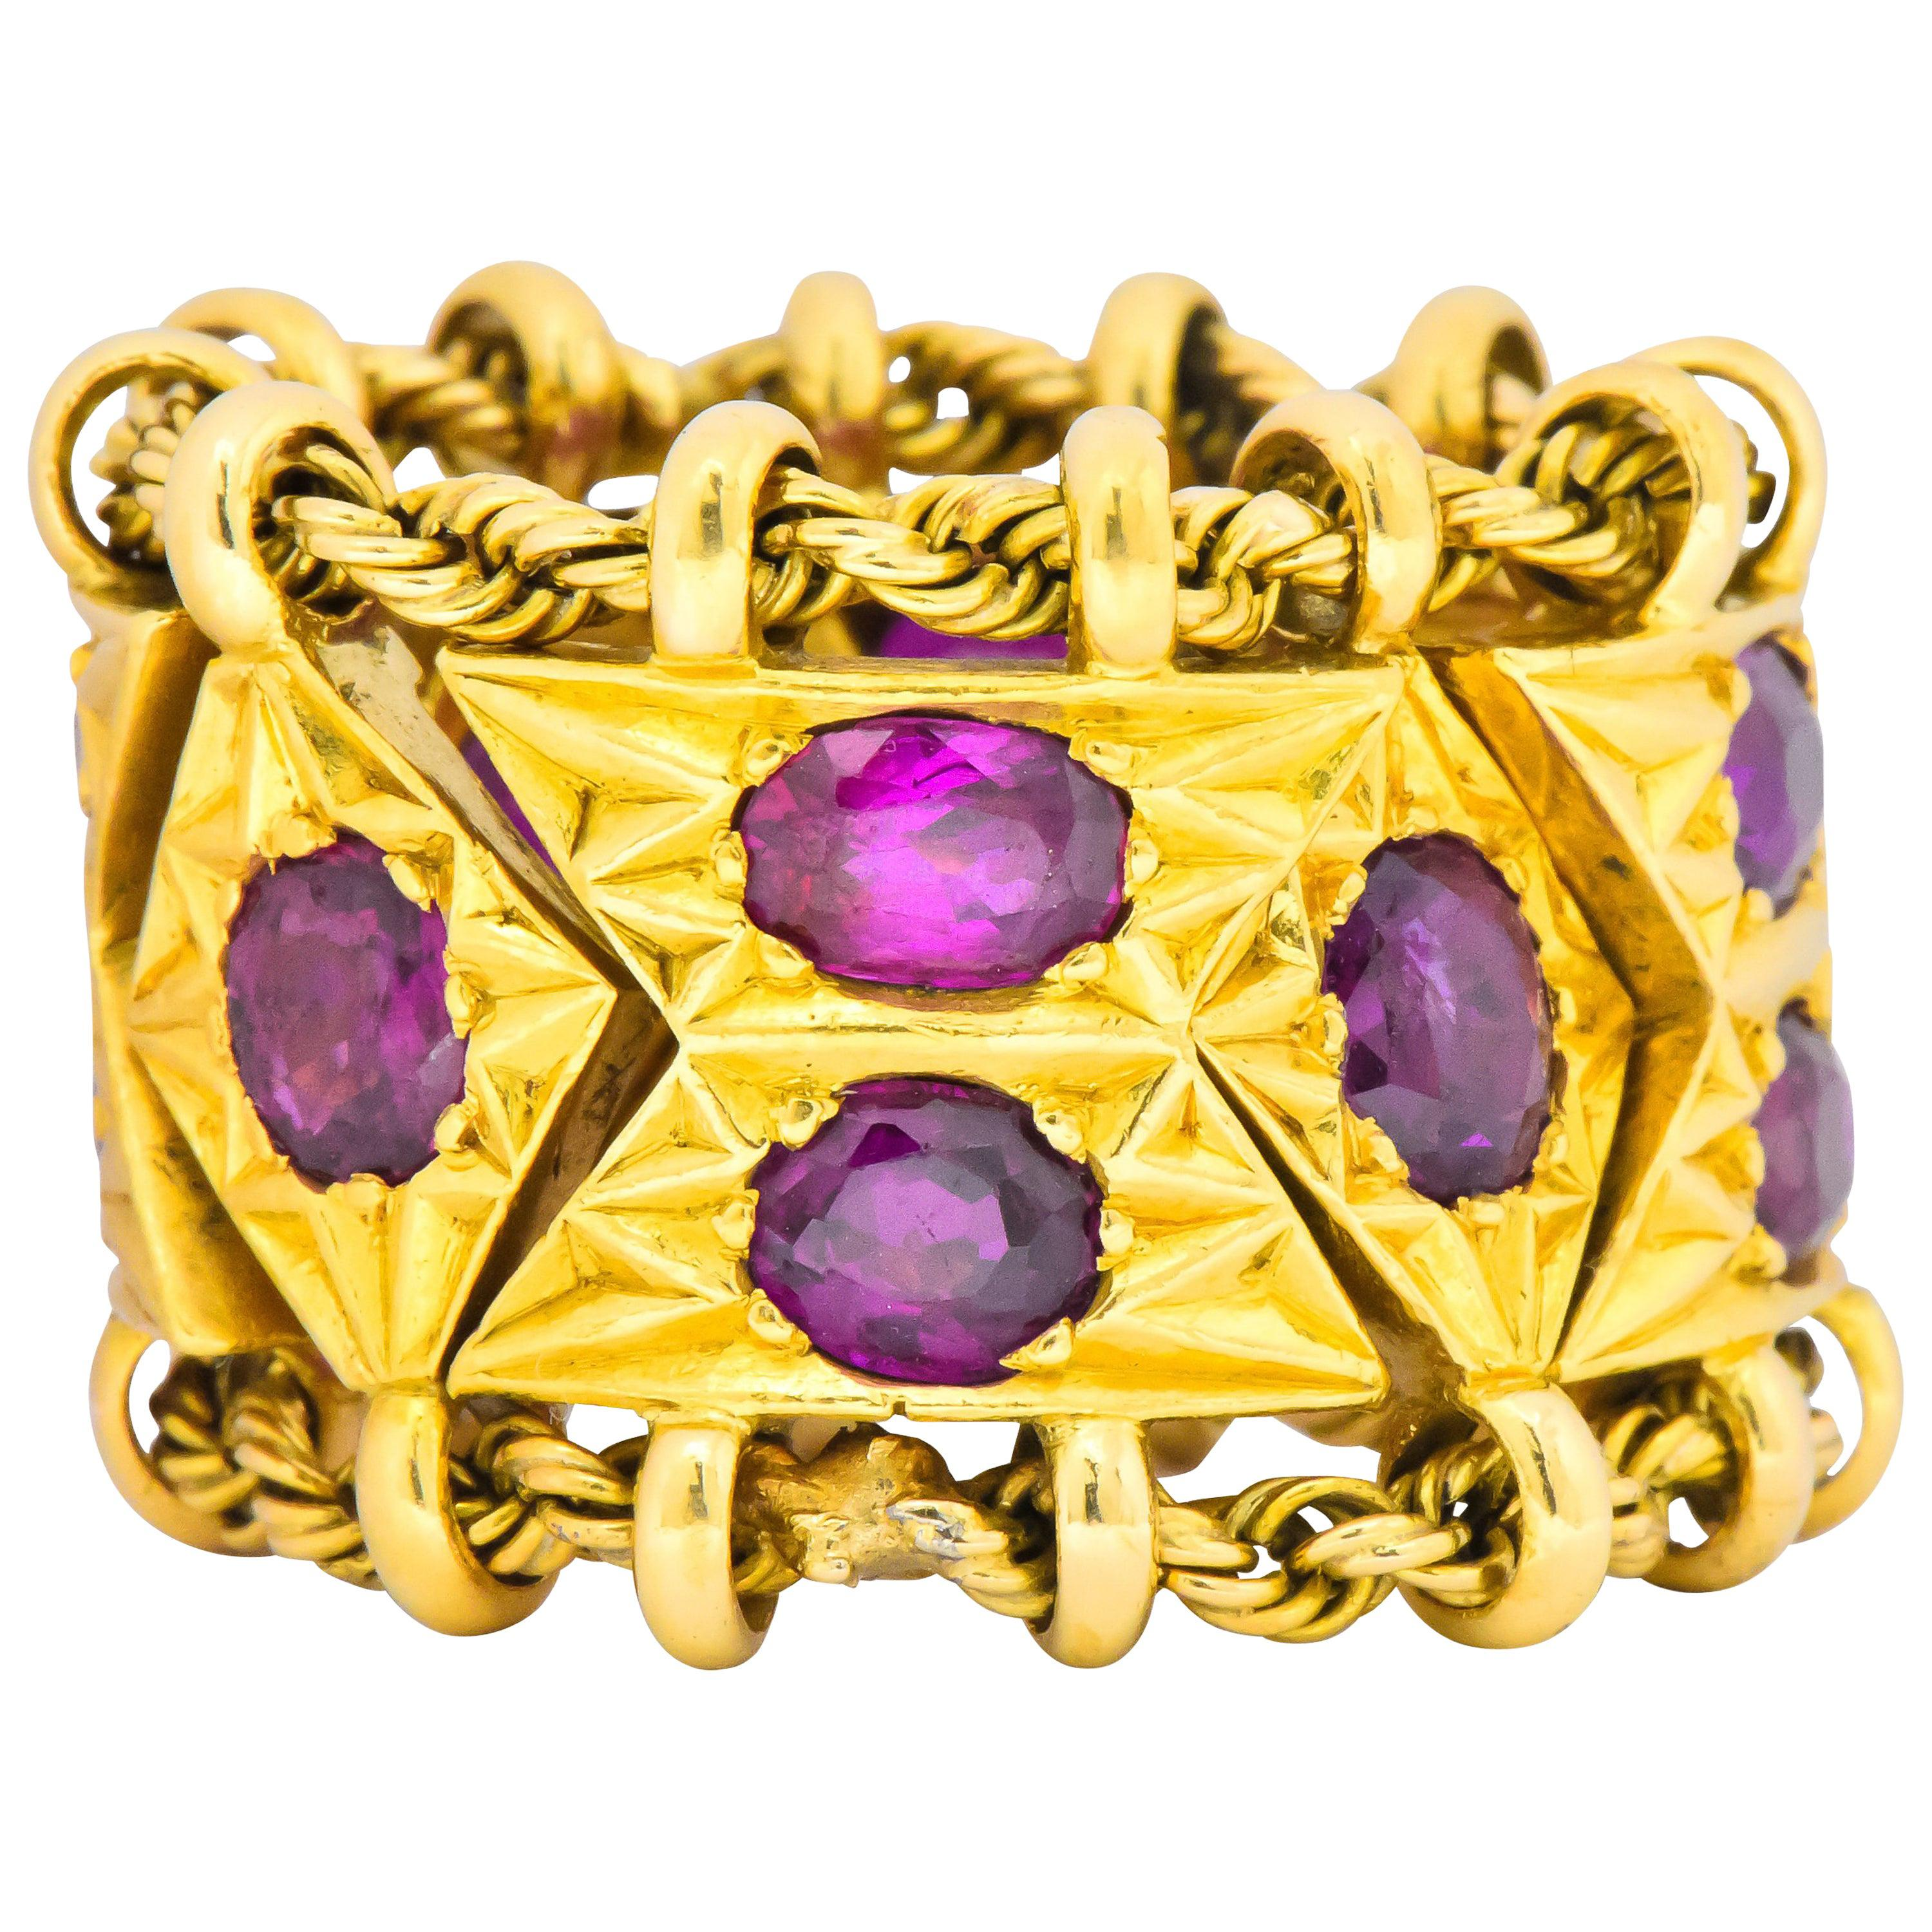 1950's Mid-Century 7.50 Carat Ruby 18 Karat Gold Link Articulated Band Ring